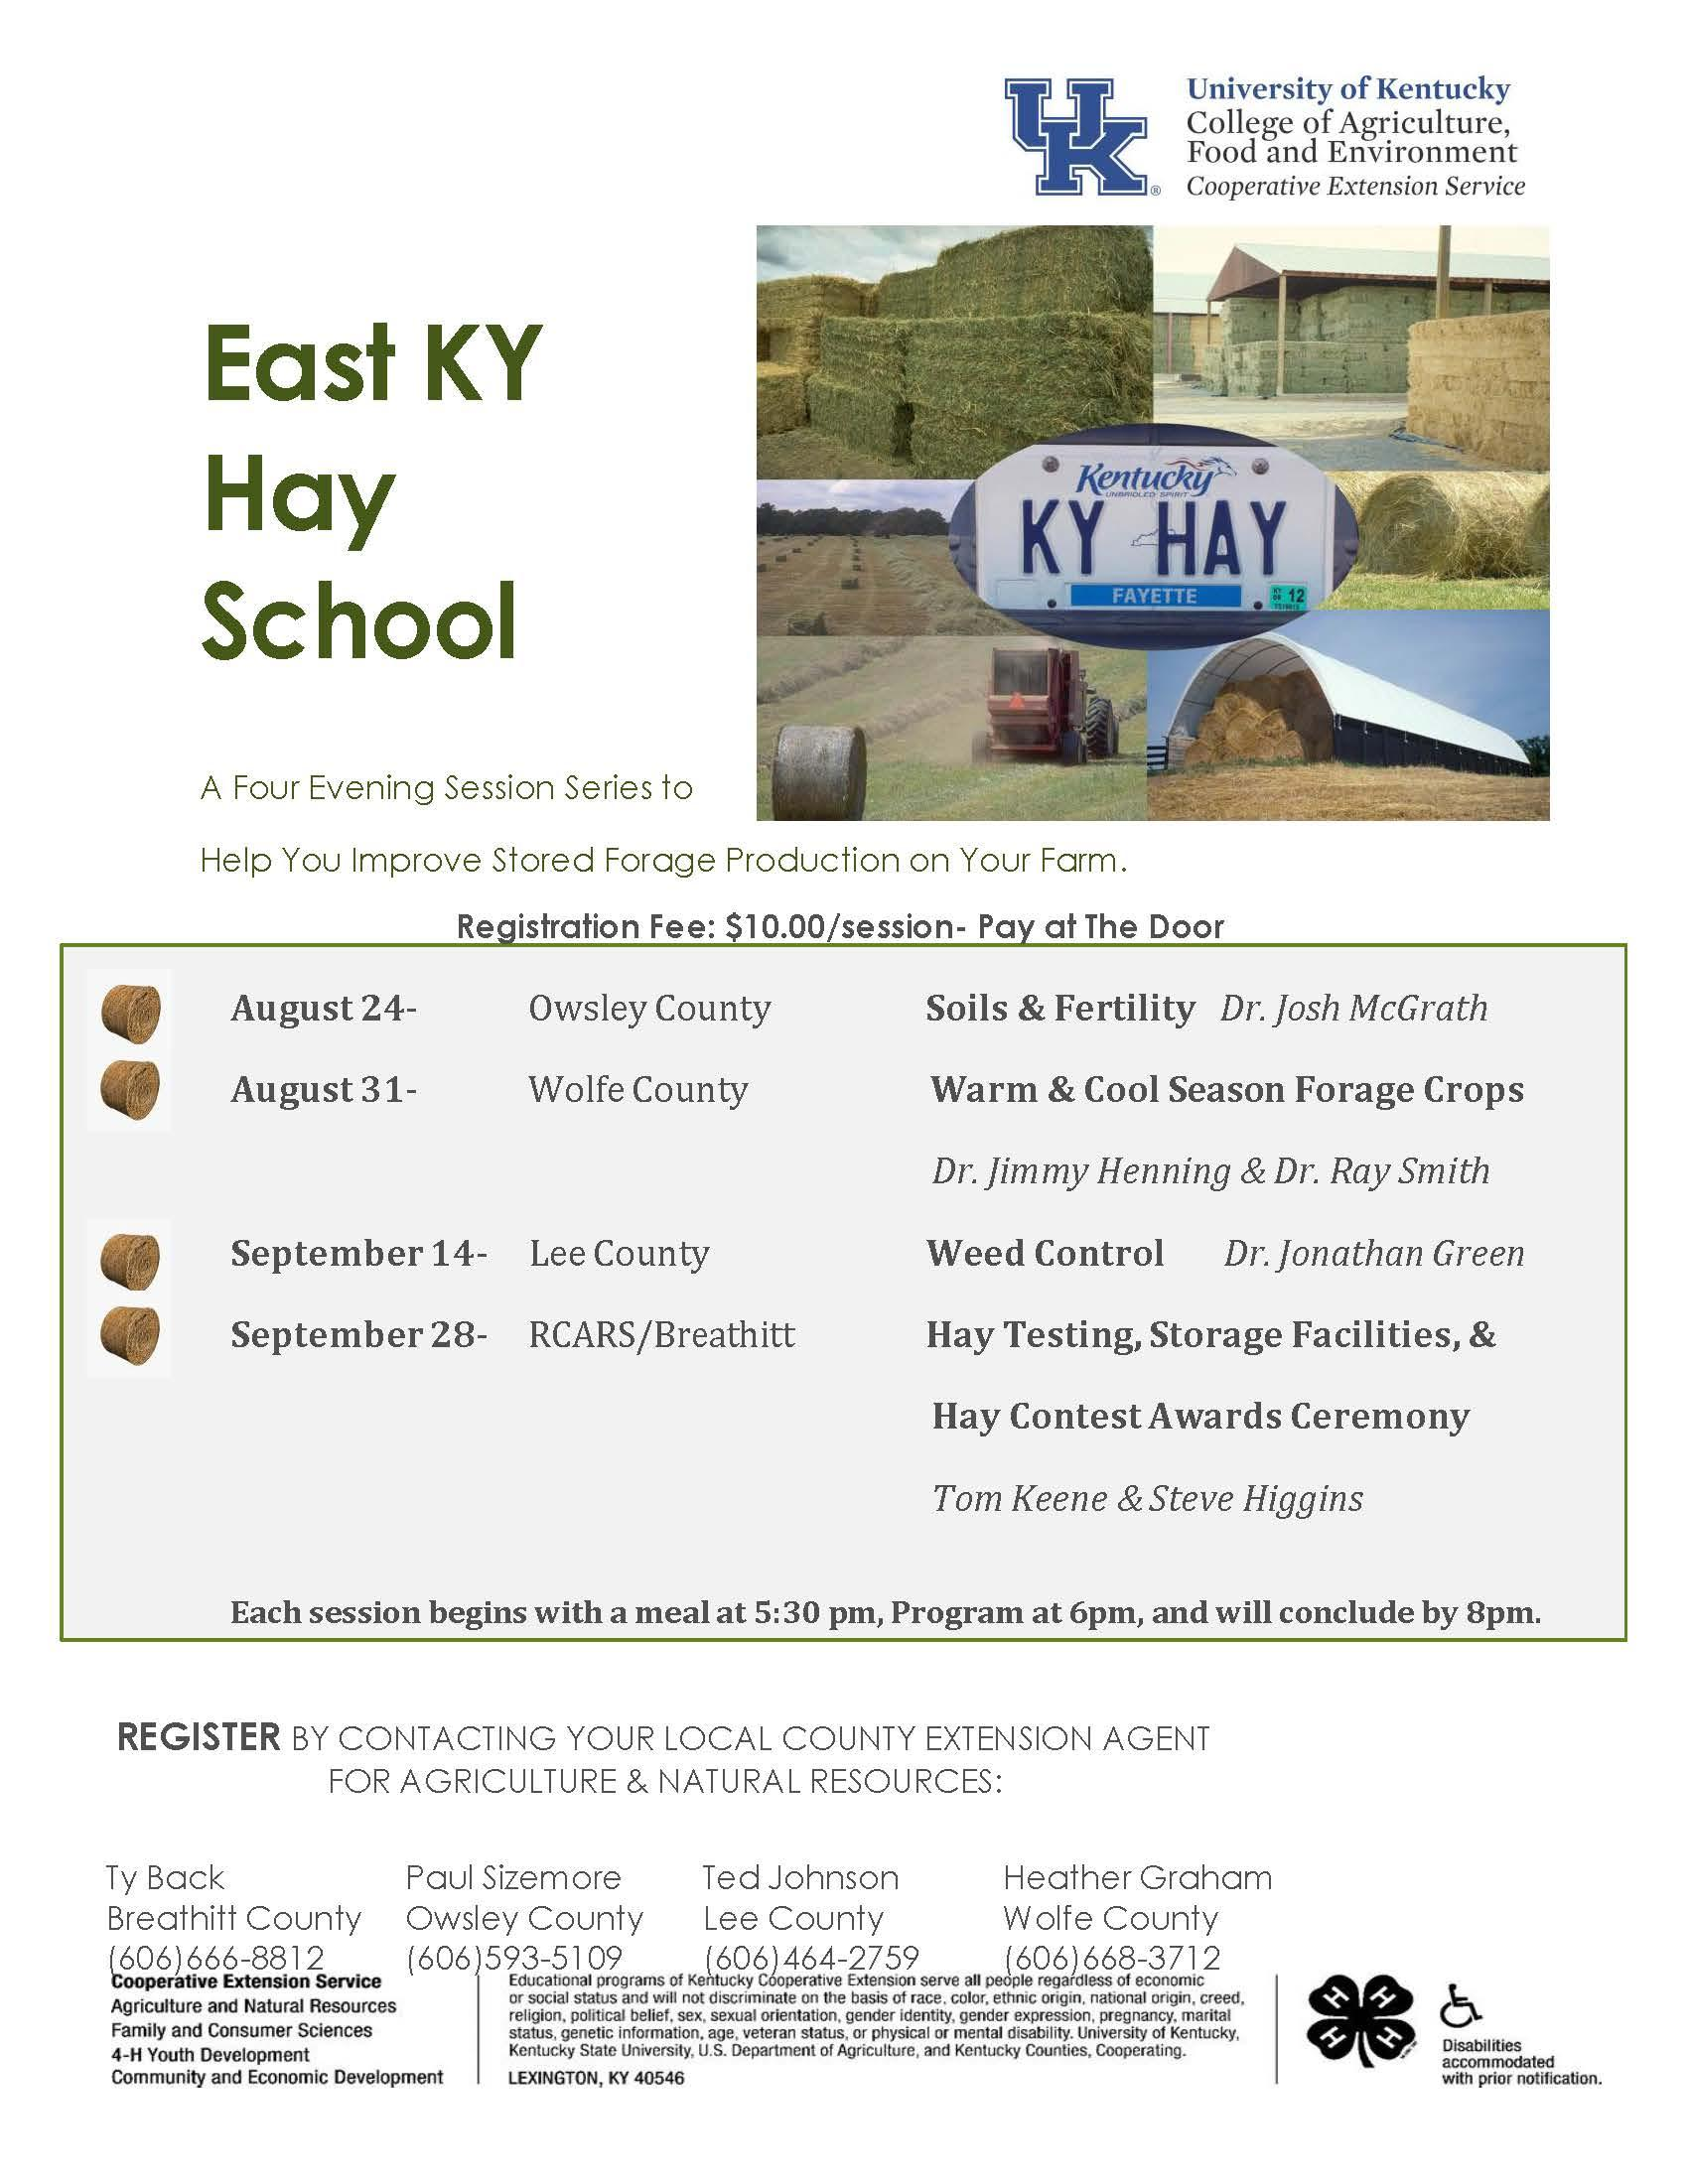 East KY Hay School